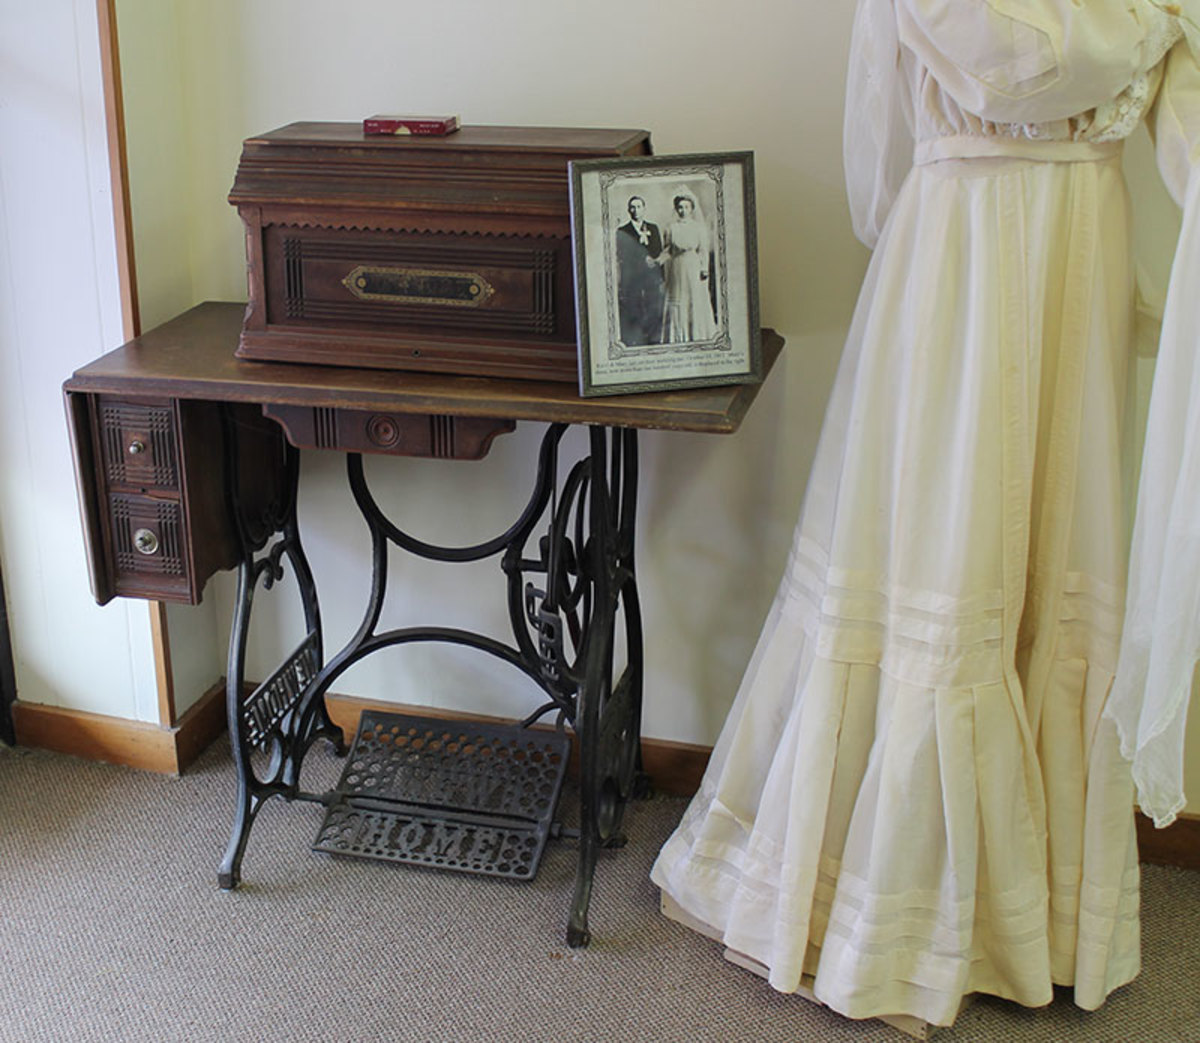 Treadle sewing machines were one of the main furnishings in most households in the 1800s to mid 1900s